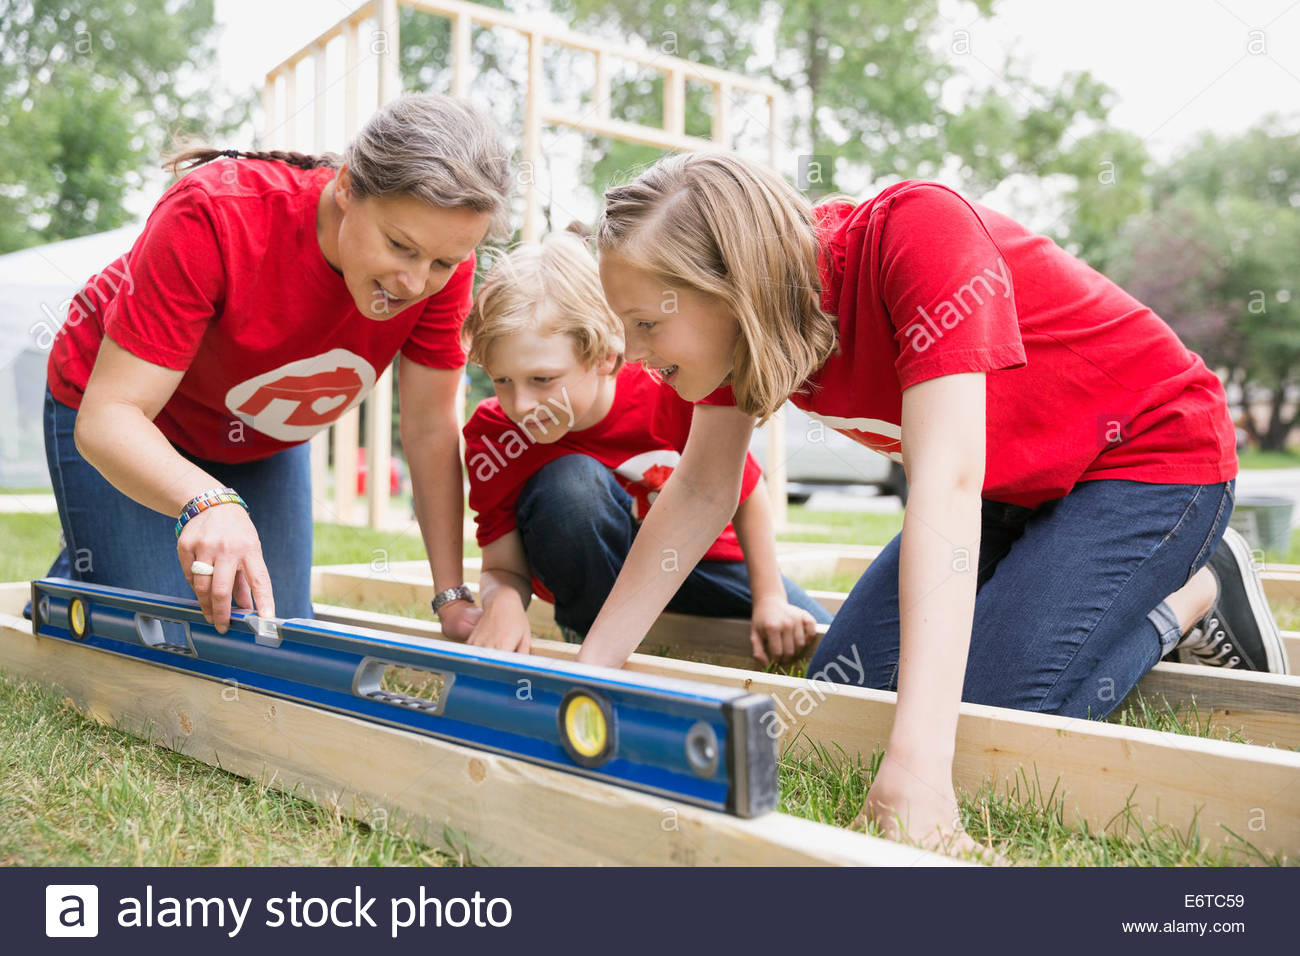 Volunteers using level tool on construction frame - Stock Image